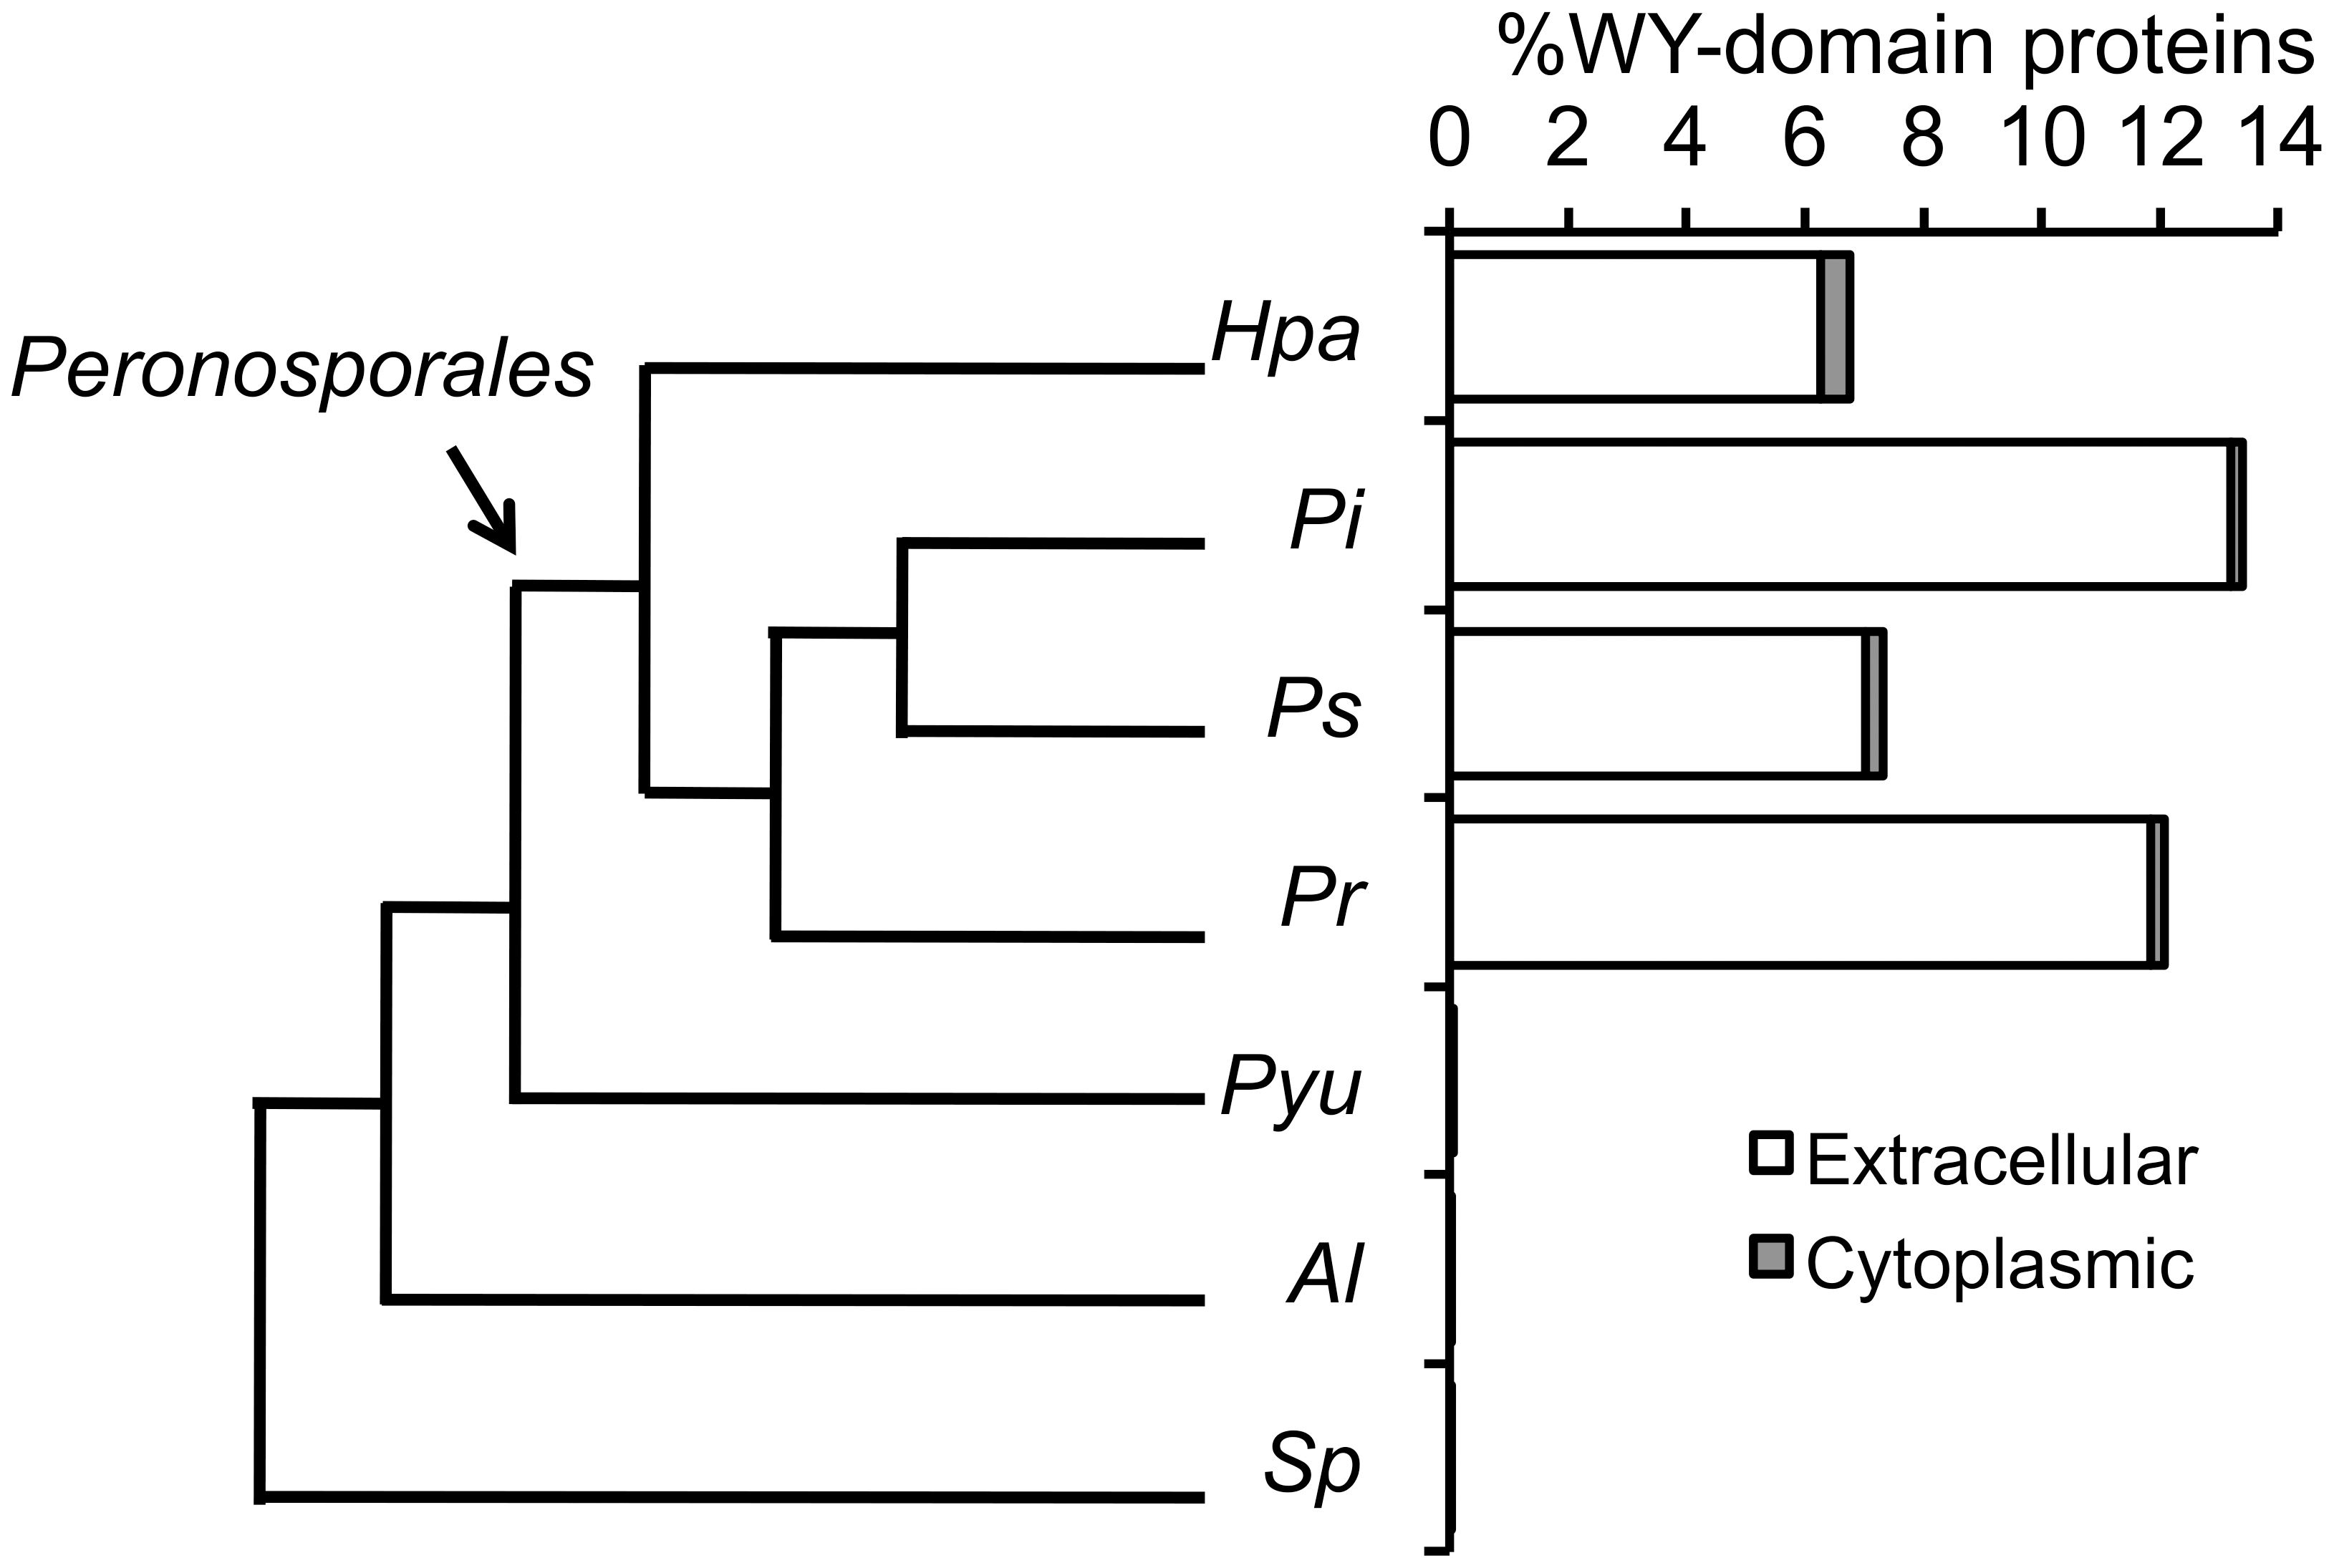 Phylogenetic relationship and presence of the WY-domain HMM signature in sequenced oomycete genomes.